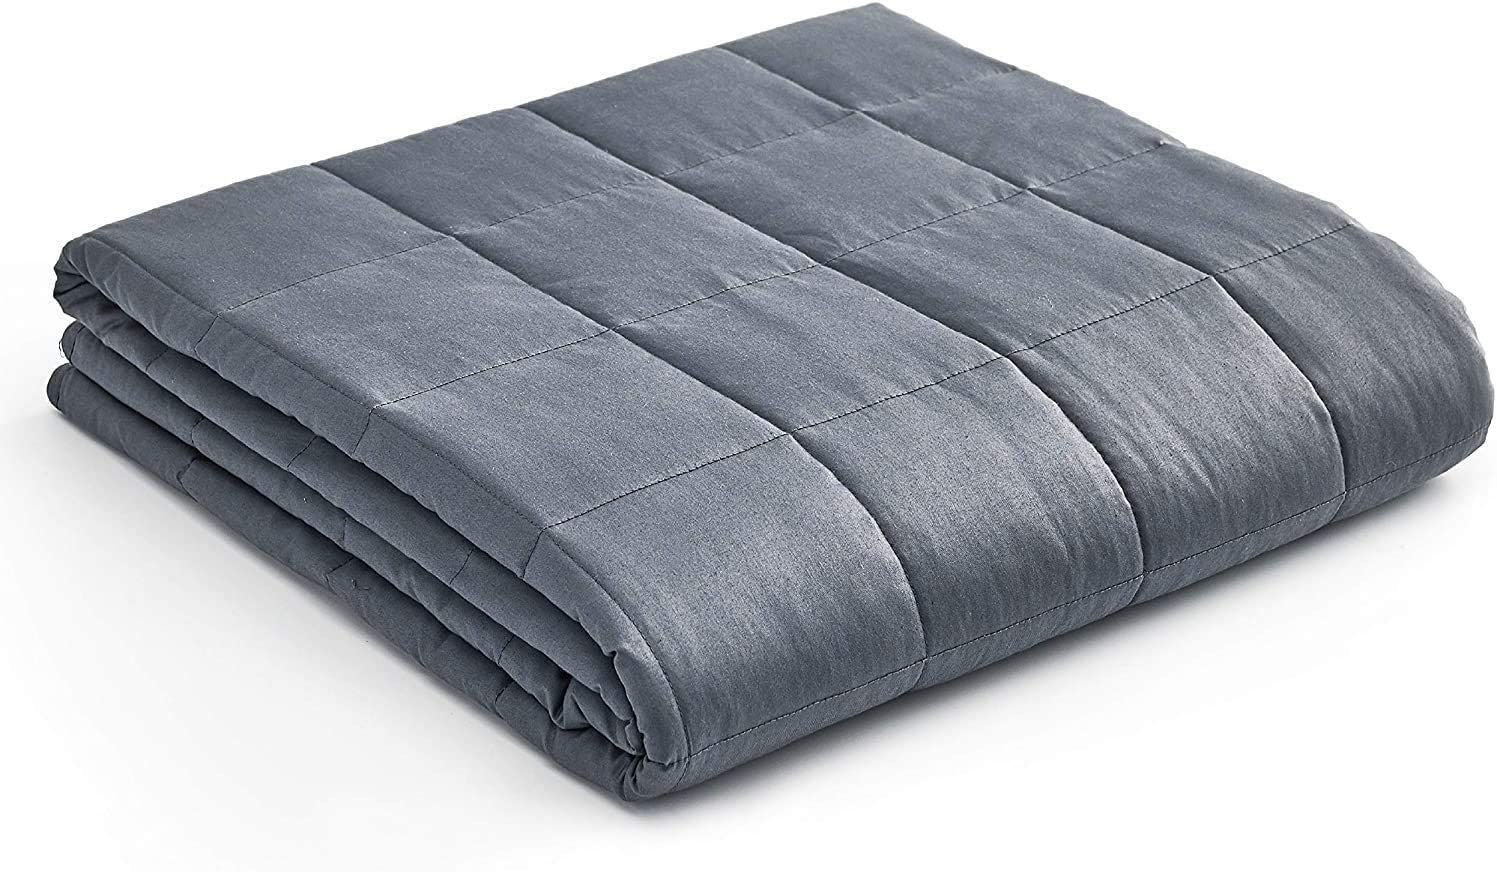 IRVINE HOME COLLECTION Bamboo Weighted Blanket Queen It is very lowest price popular Full 60x80